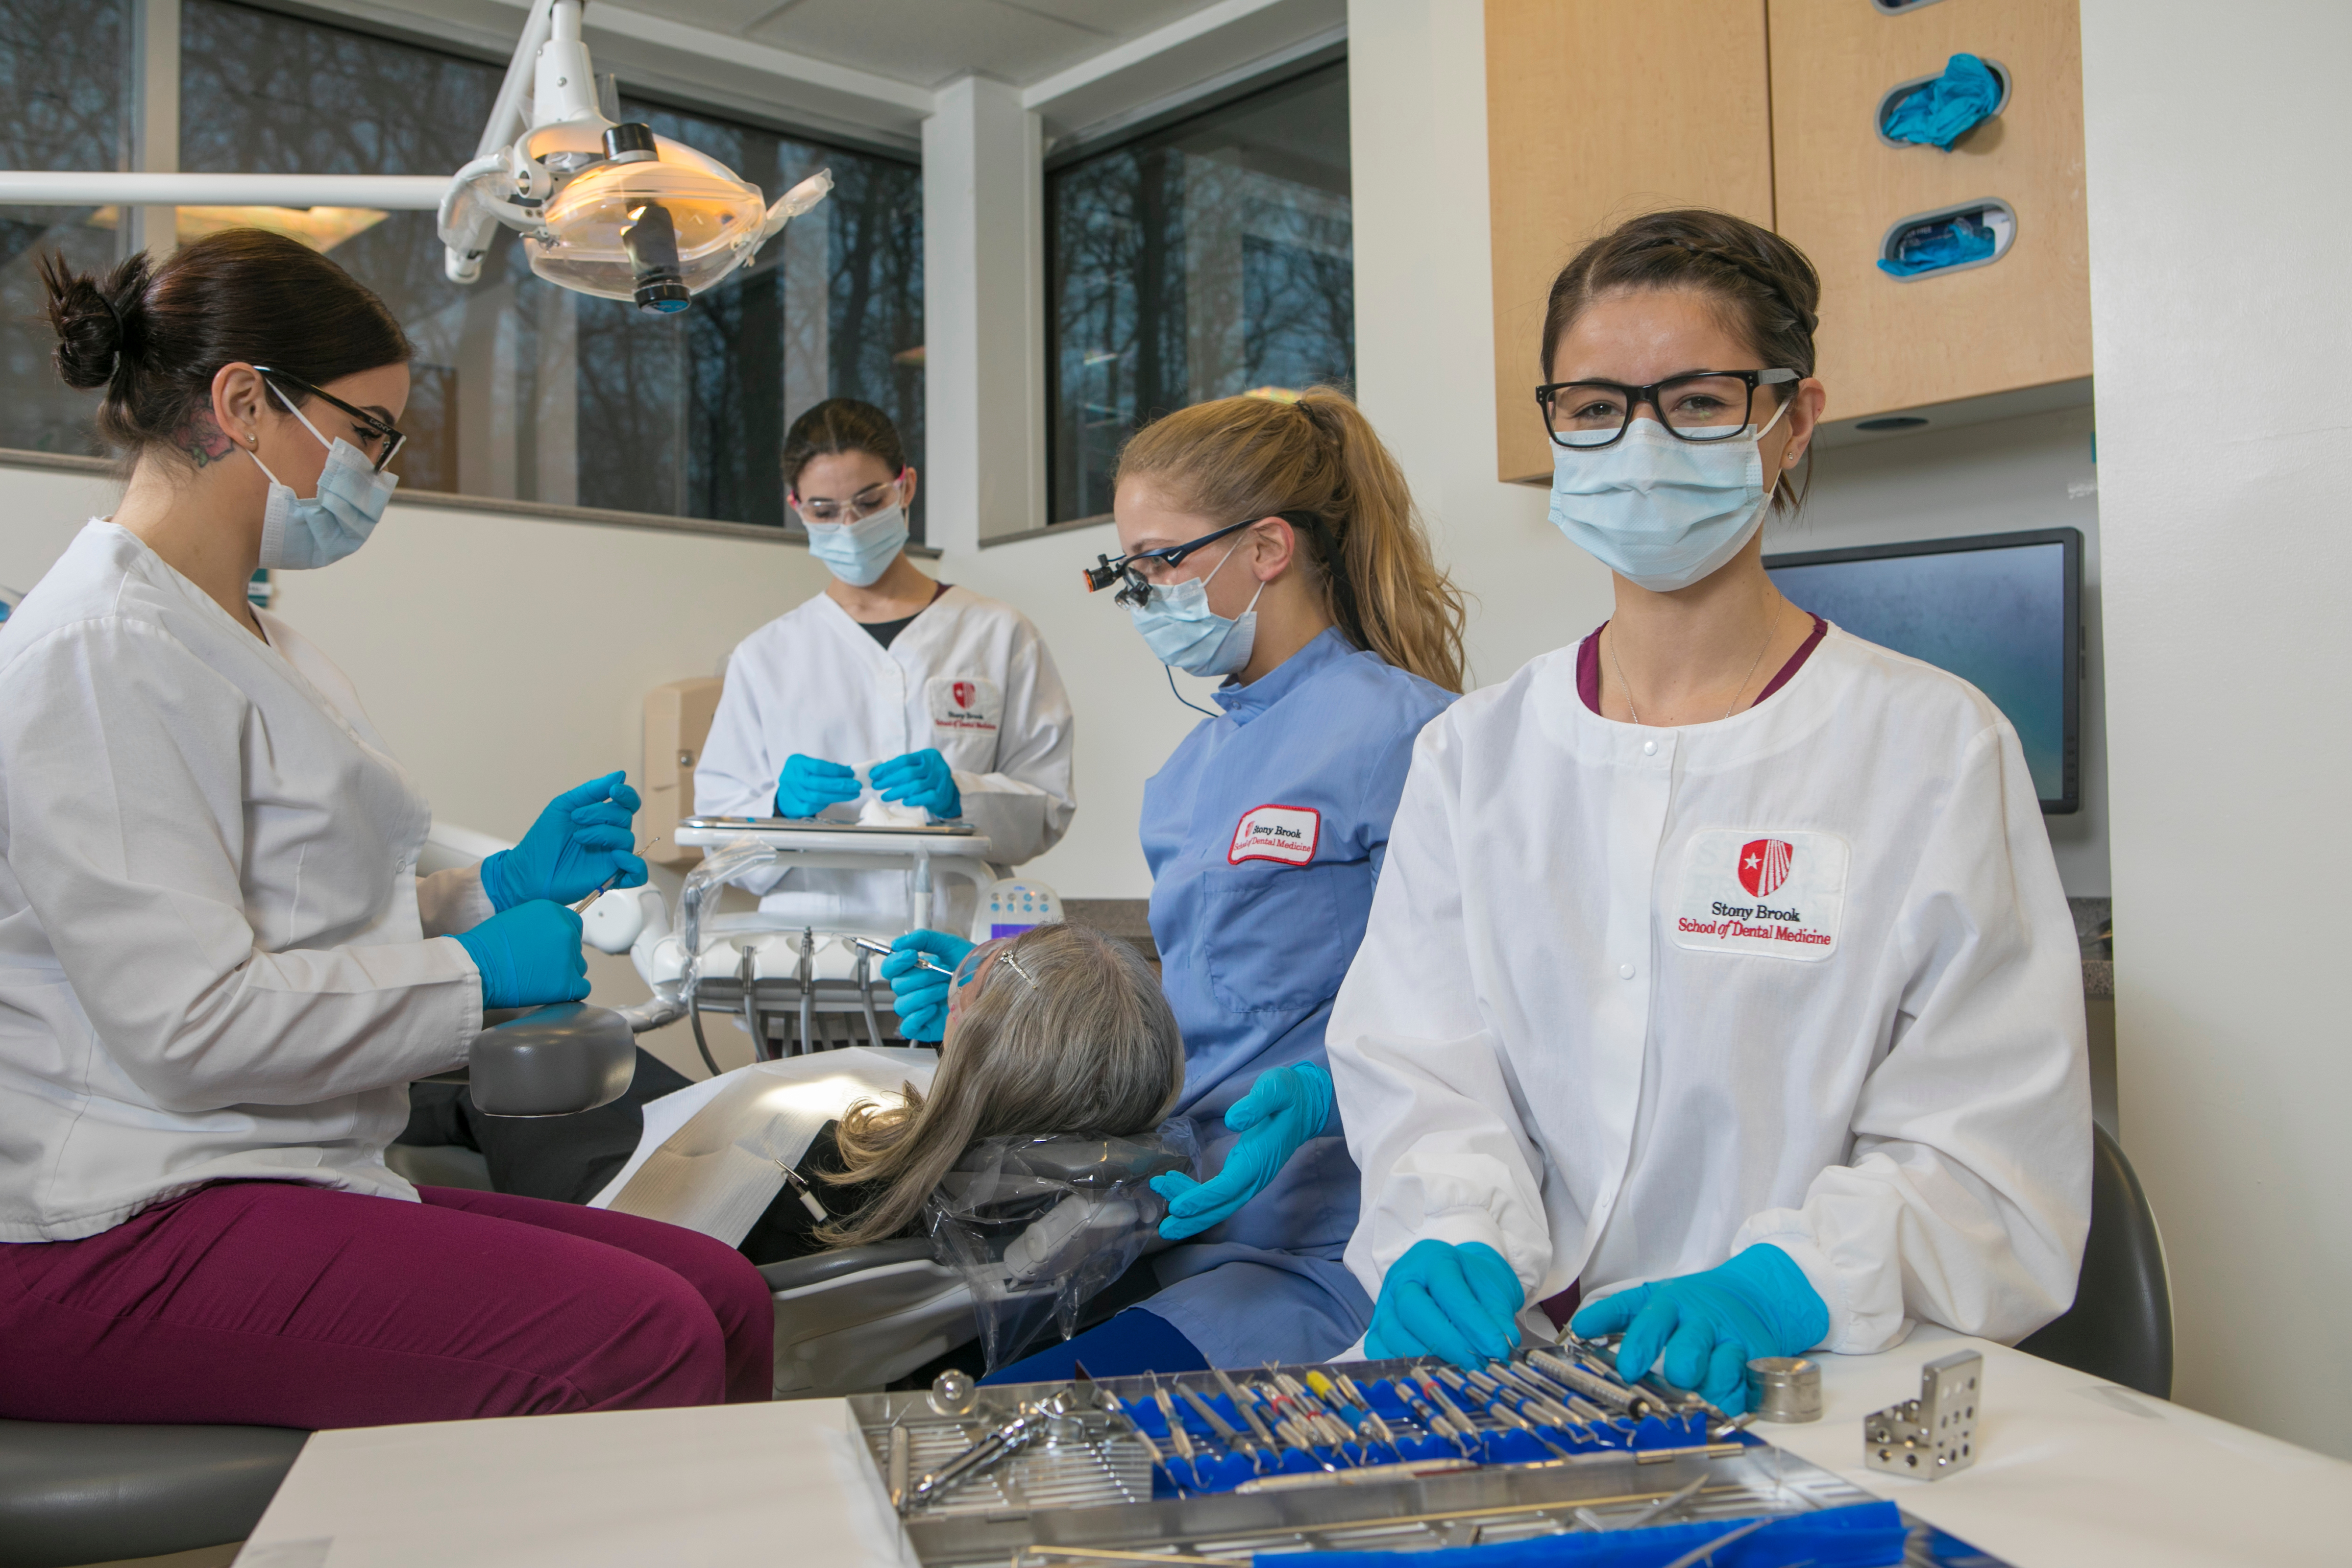 Students at Stony Brook University's School of Dental Medicine will be better able to finance their education thanks to the Dr. Bernard Malberg Memorial Scholarship Endowment Fund.